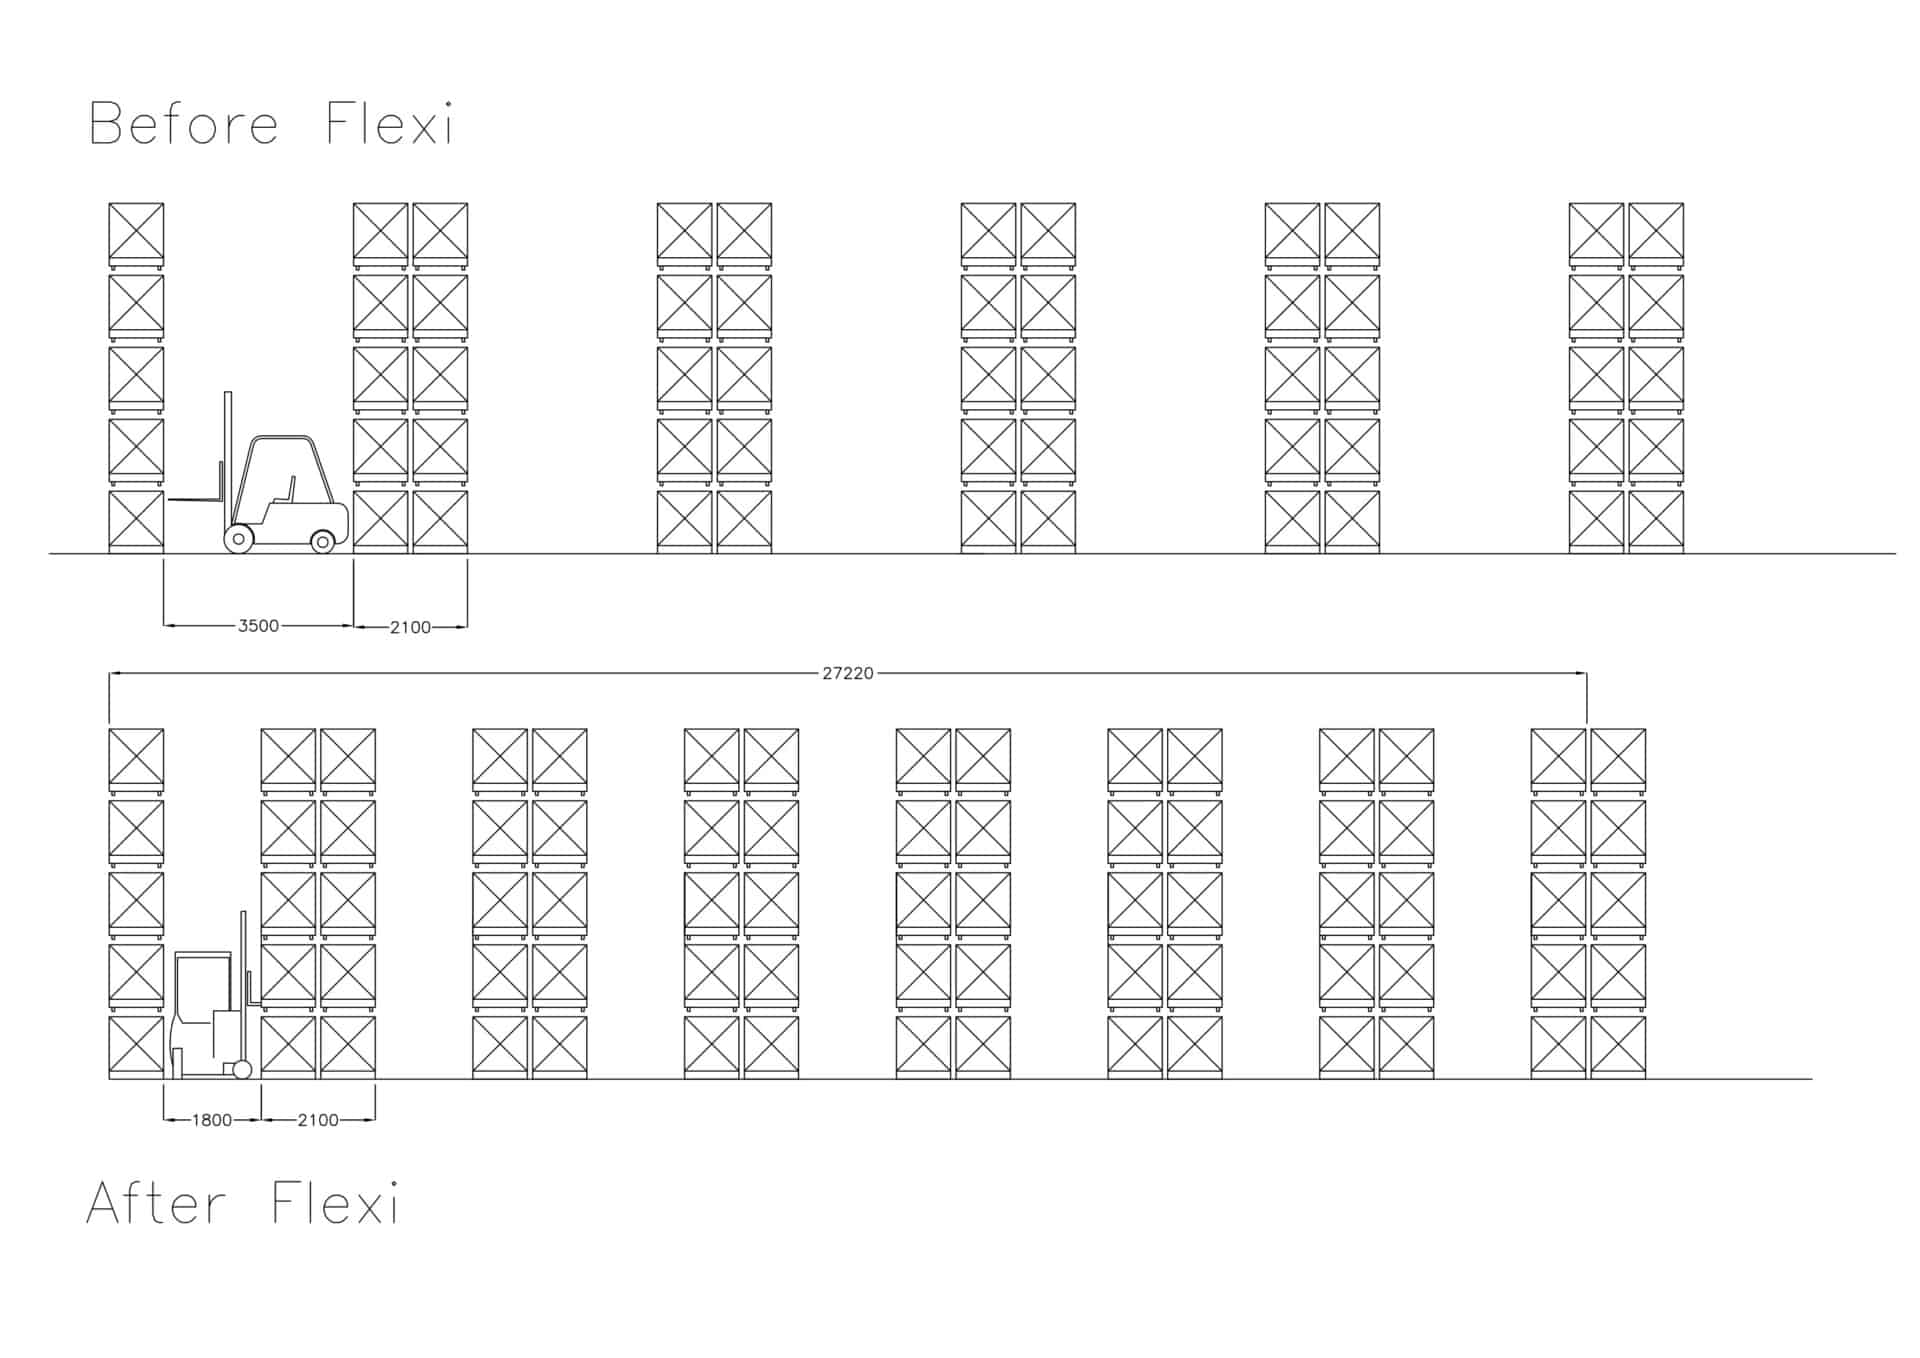 Racking Saving Layout From Brochure Model (1) 1